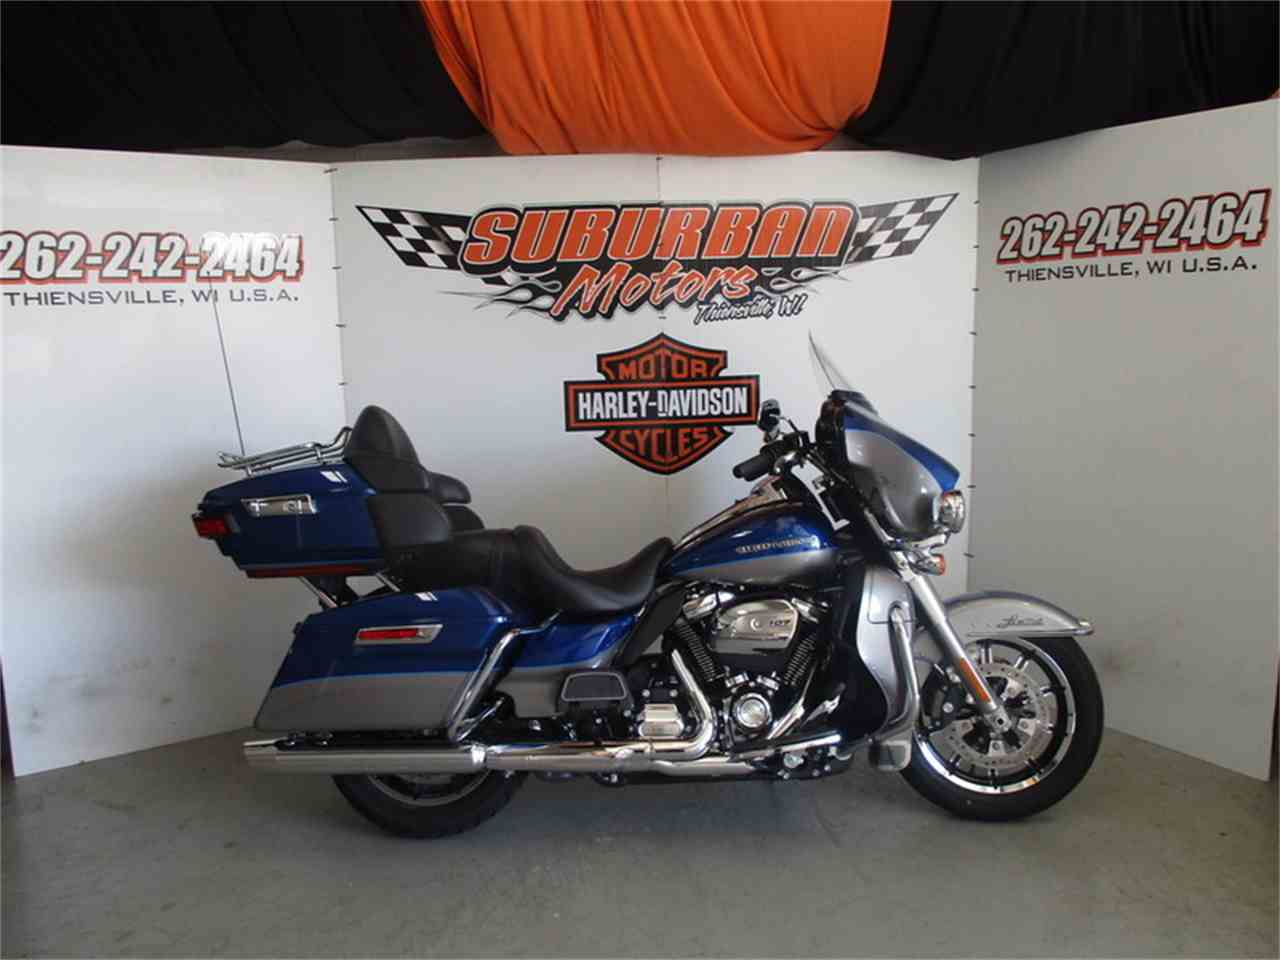 Large Picture of 2017 Harley-Davidson® FLHTK - Ultra Limited located in Wisconsin - $23,833.00 - LVEH